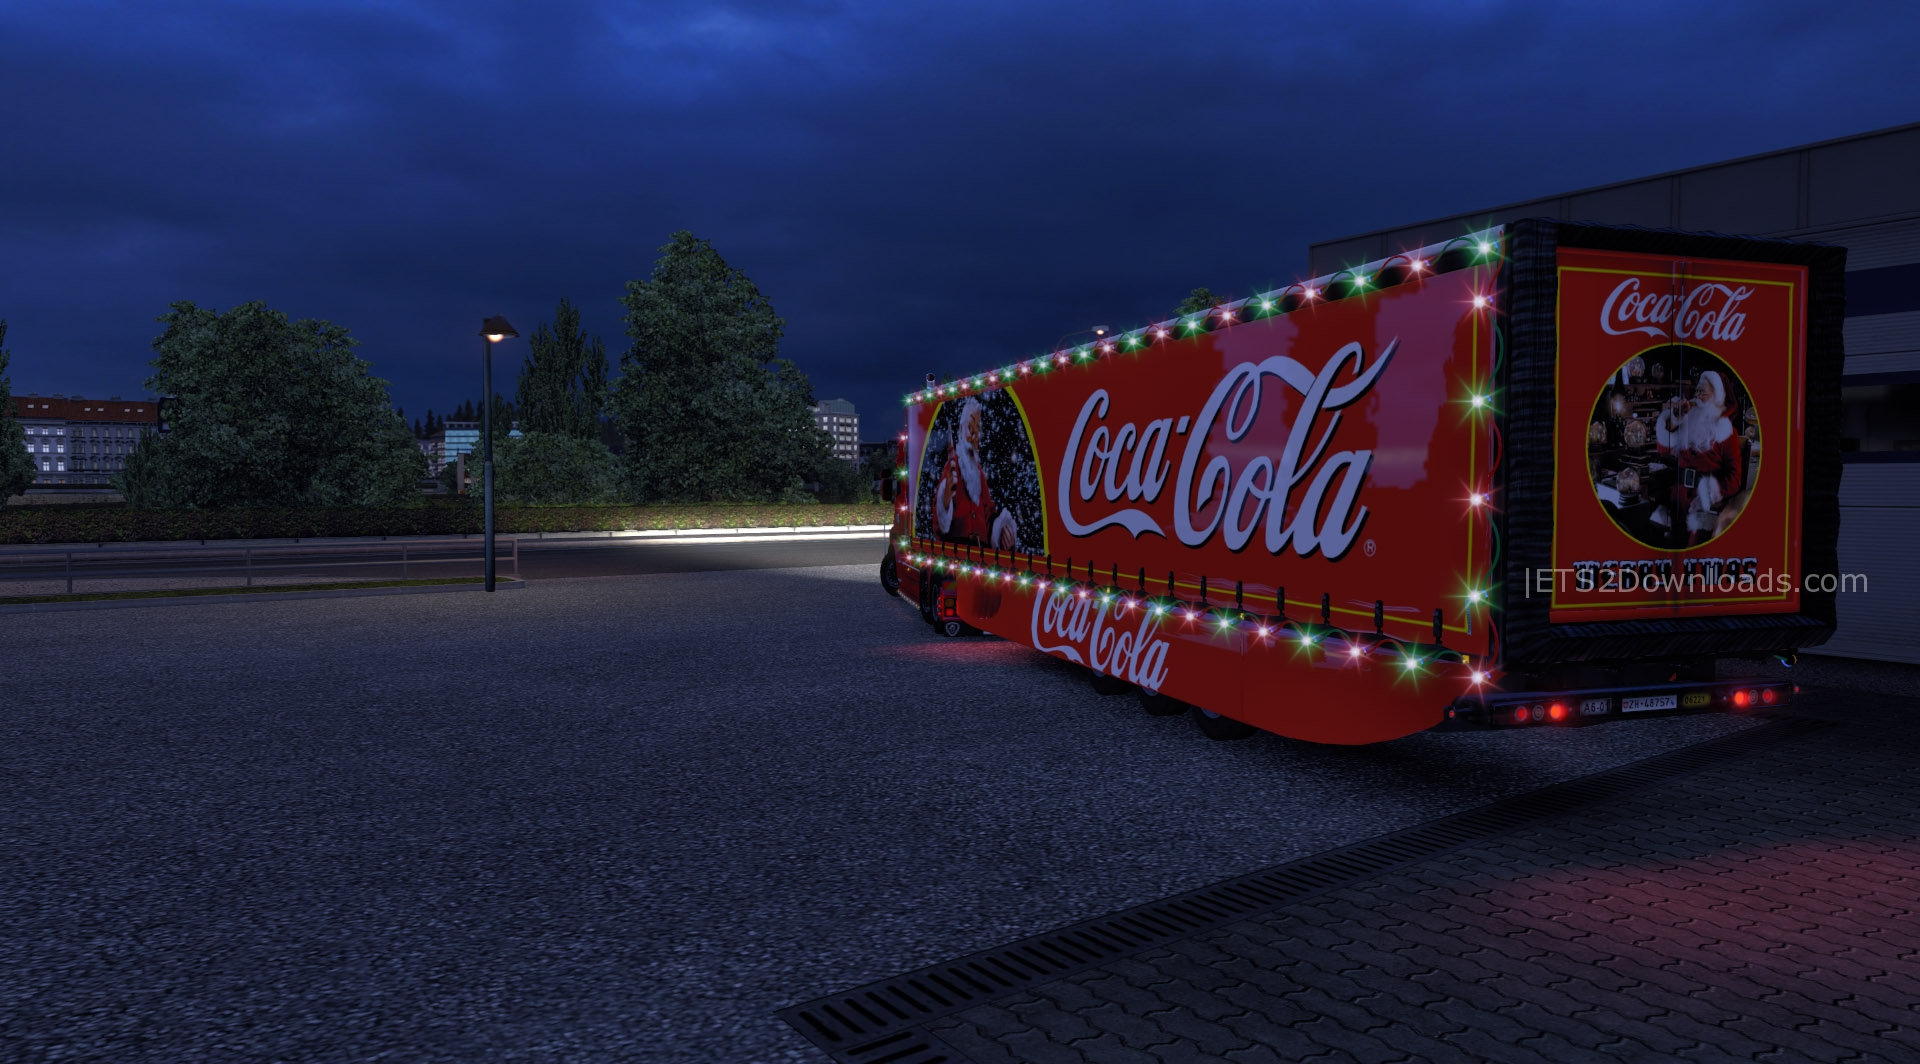 cocacola-xmas-skin-for-scania-t-2